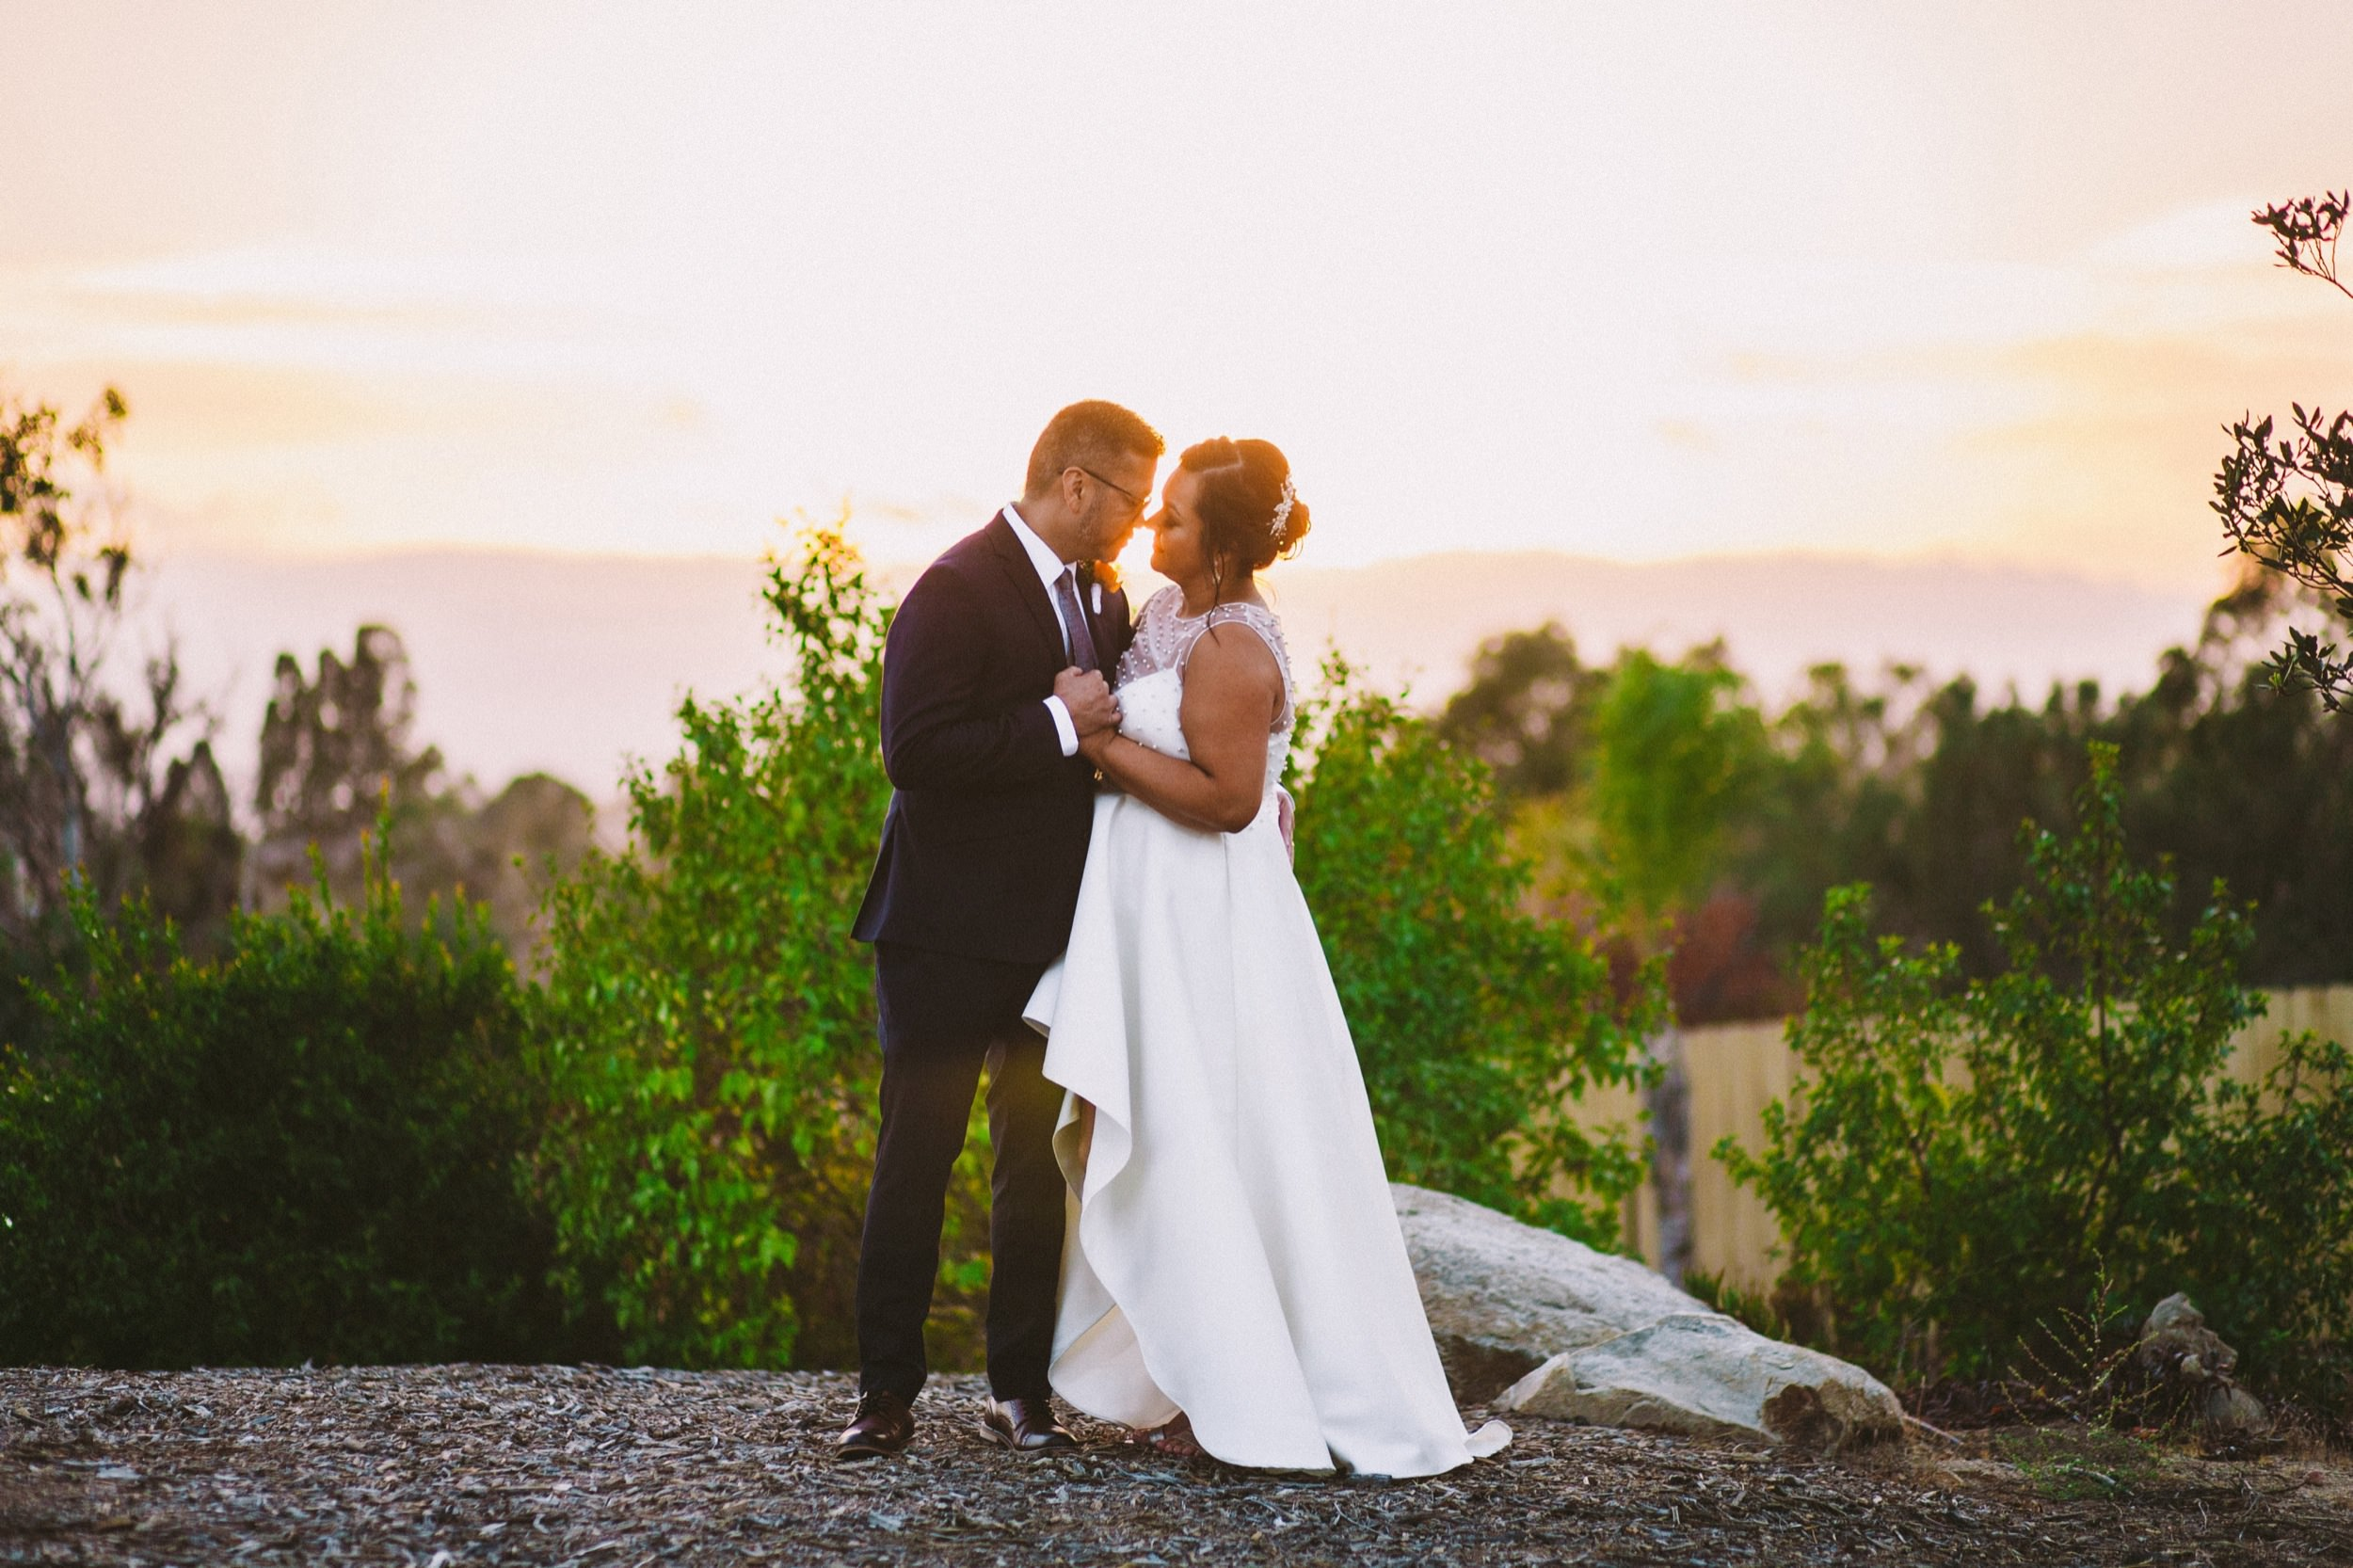 Intimate & colorful Temecula Documentary Wedding Photography-87.jpg